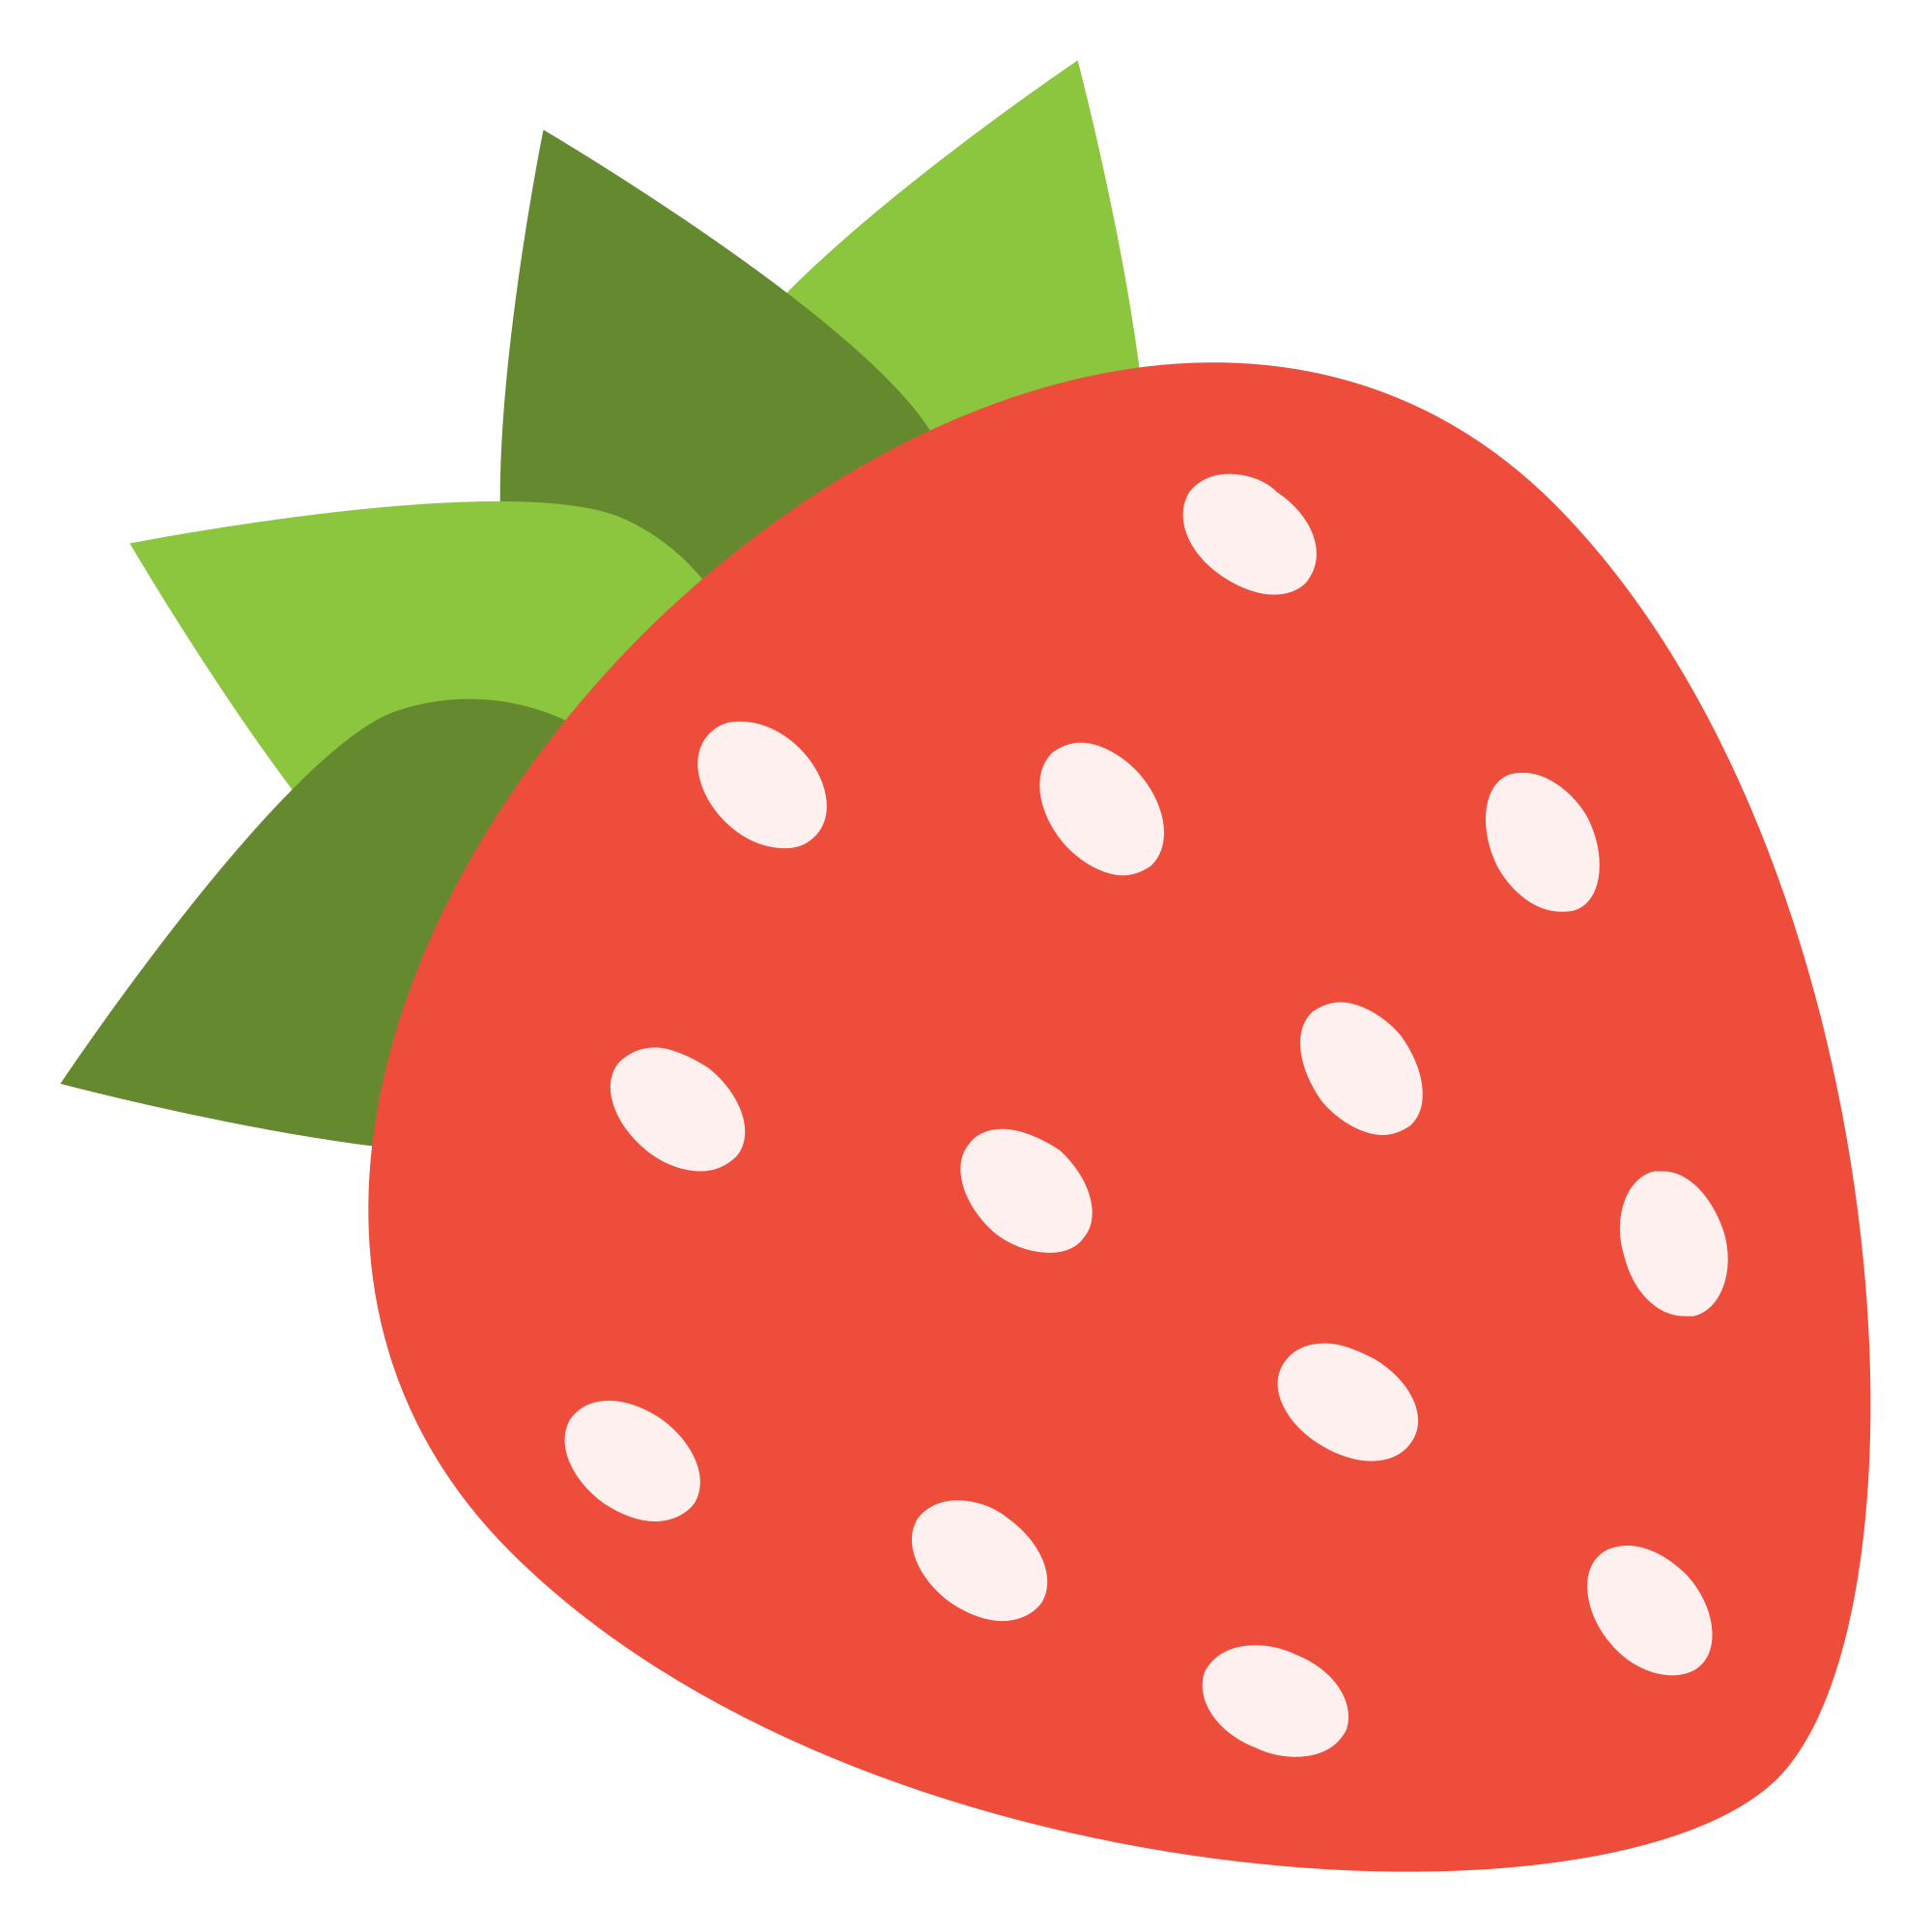 strawberries clipart single #144476746